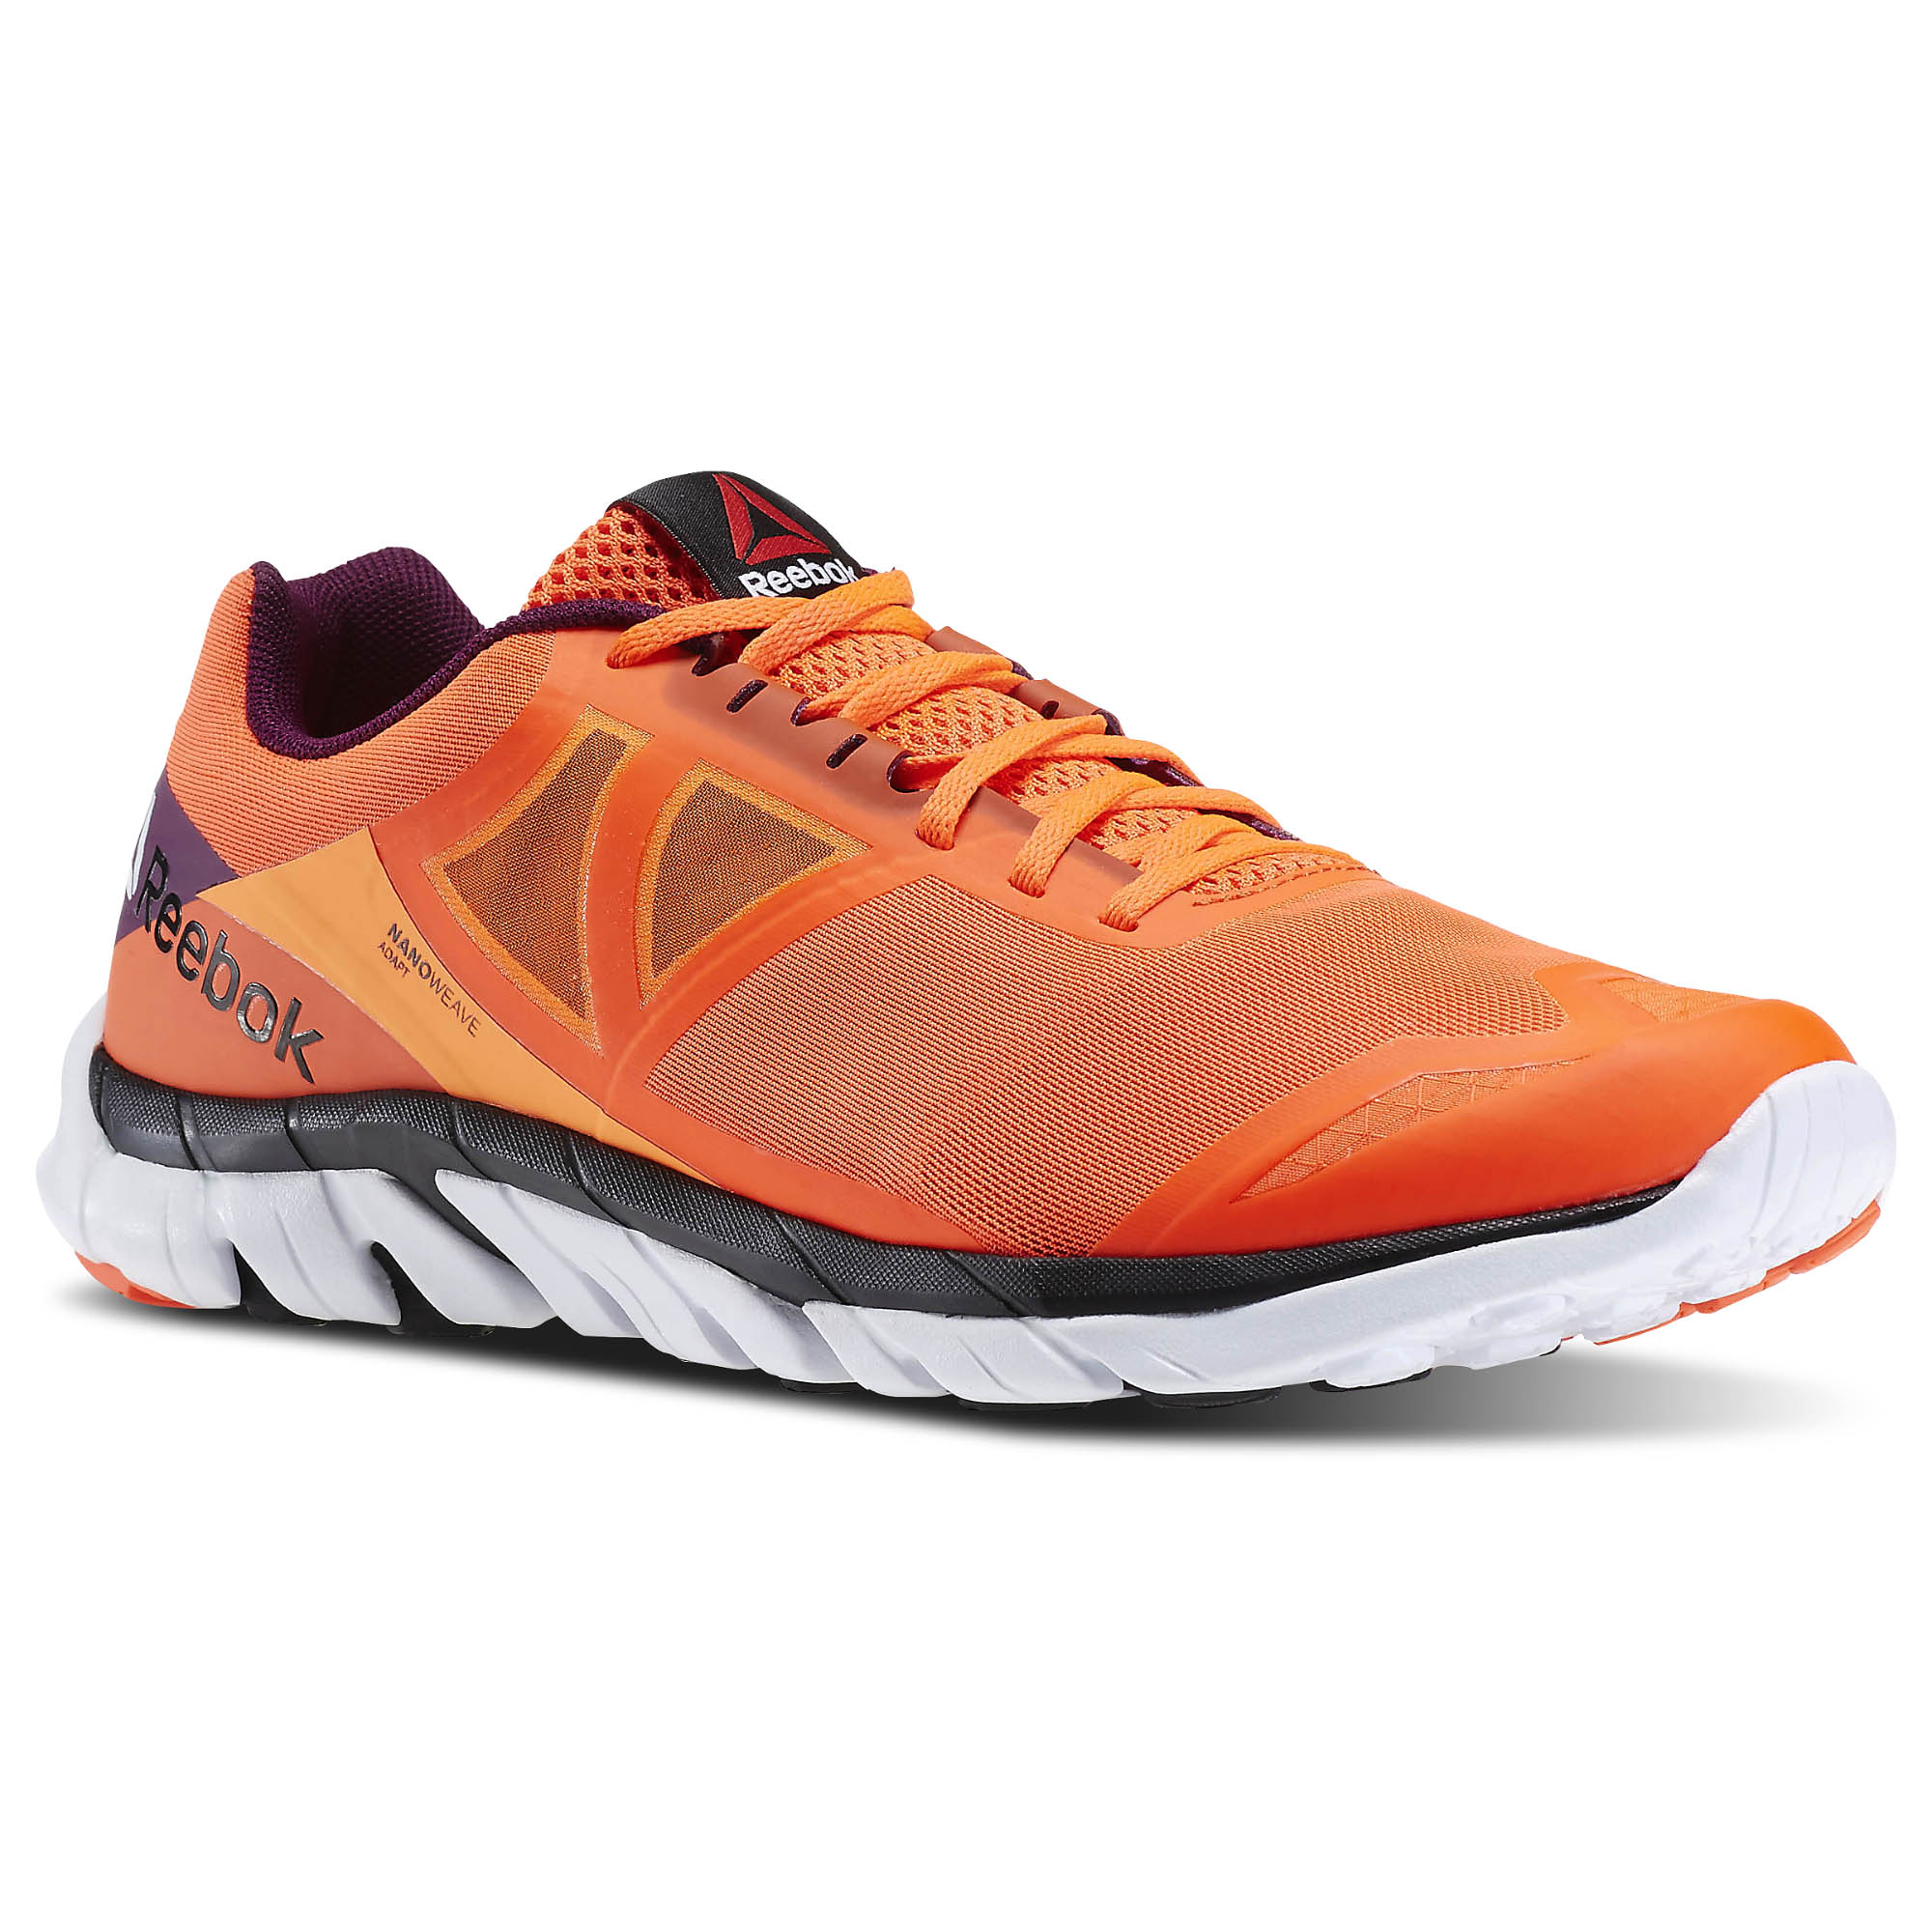 31ccff5a2bf Reebok Running shoes Zstrike run ladies red - Internet-Sport Casuals